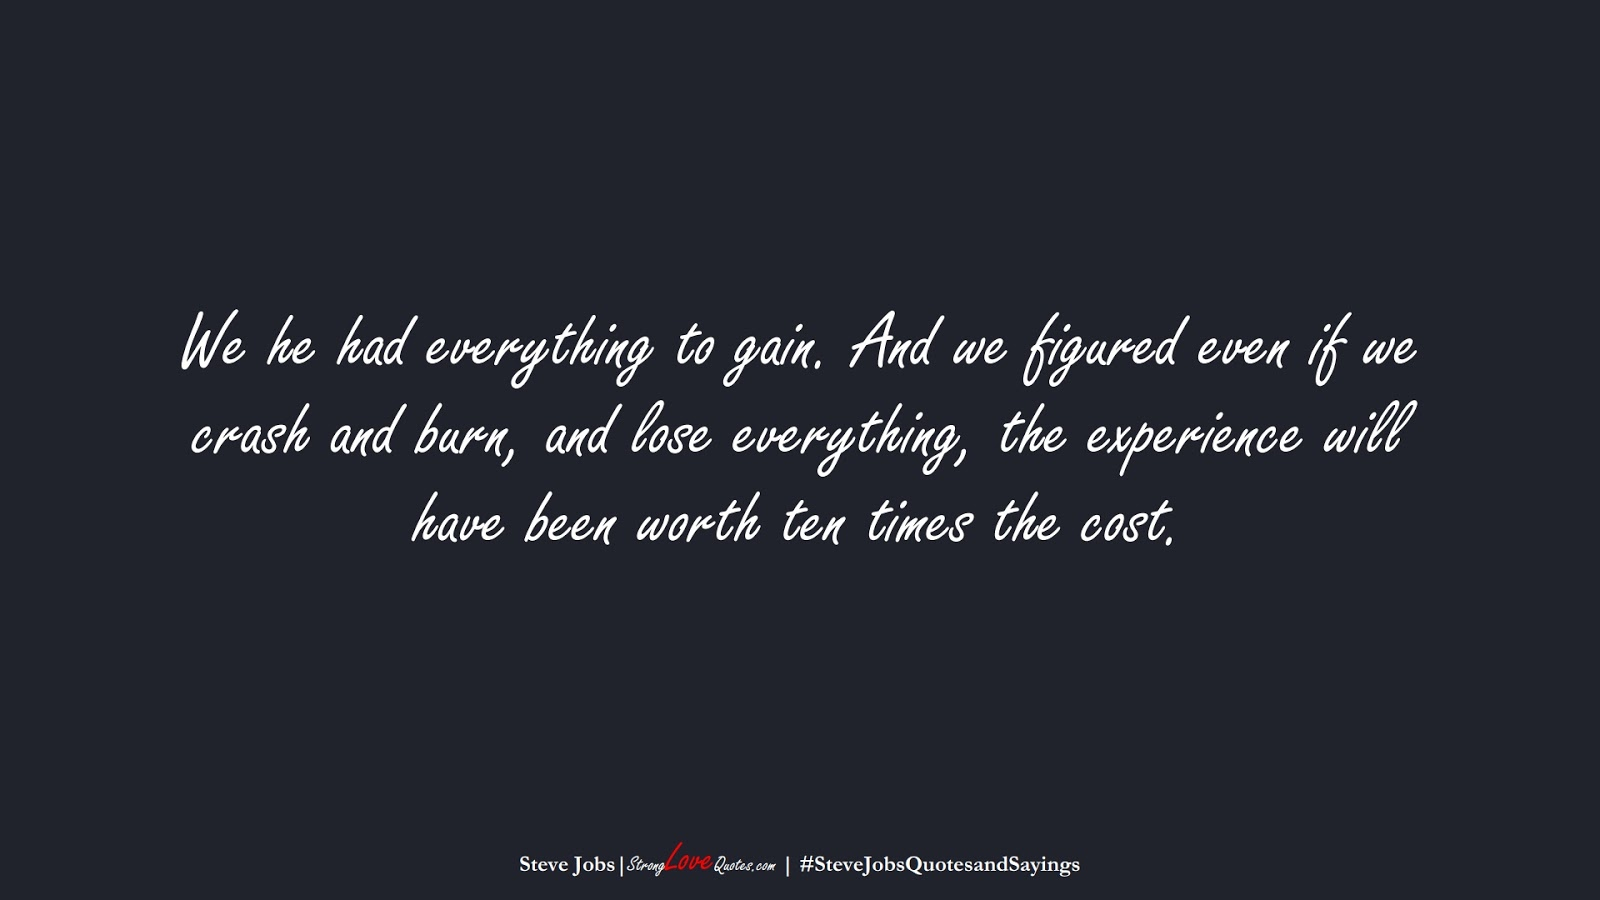 We he had everything to gain. And we figured even if we crash and burn, and lose everything, the experience will have been worth ten times the cost. (Steve Jobs);  #SteveJobsQuotesandSayings